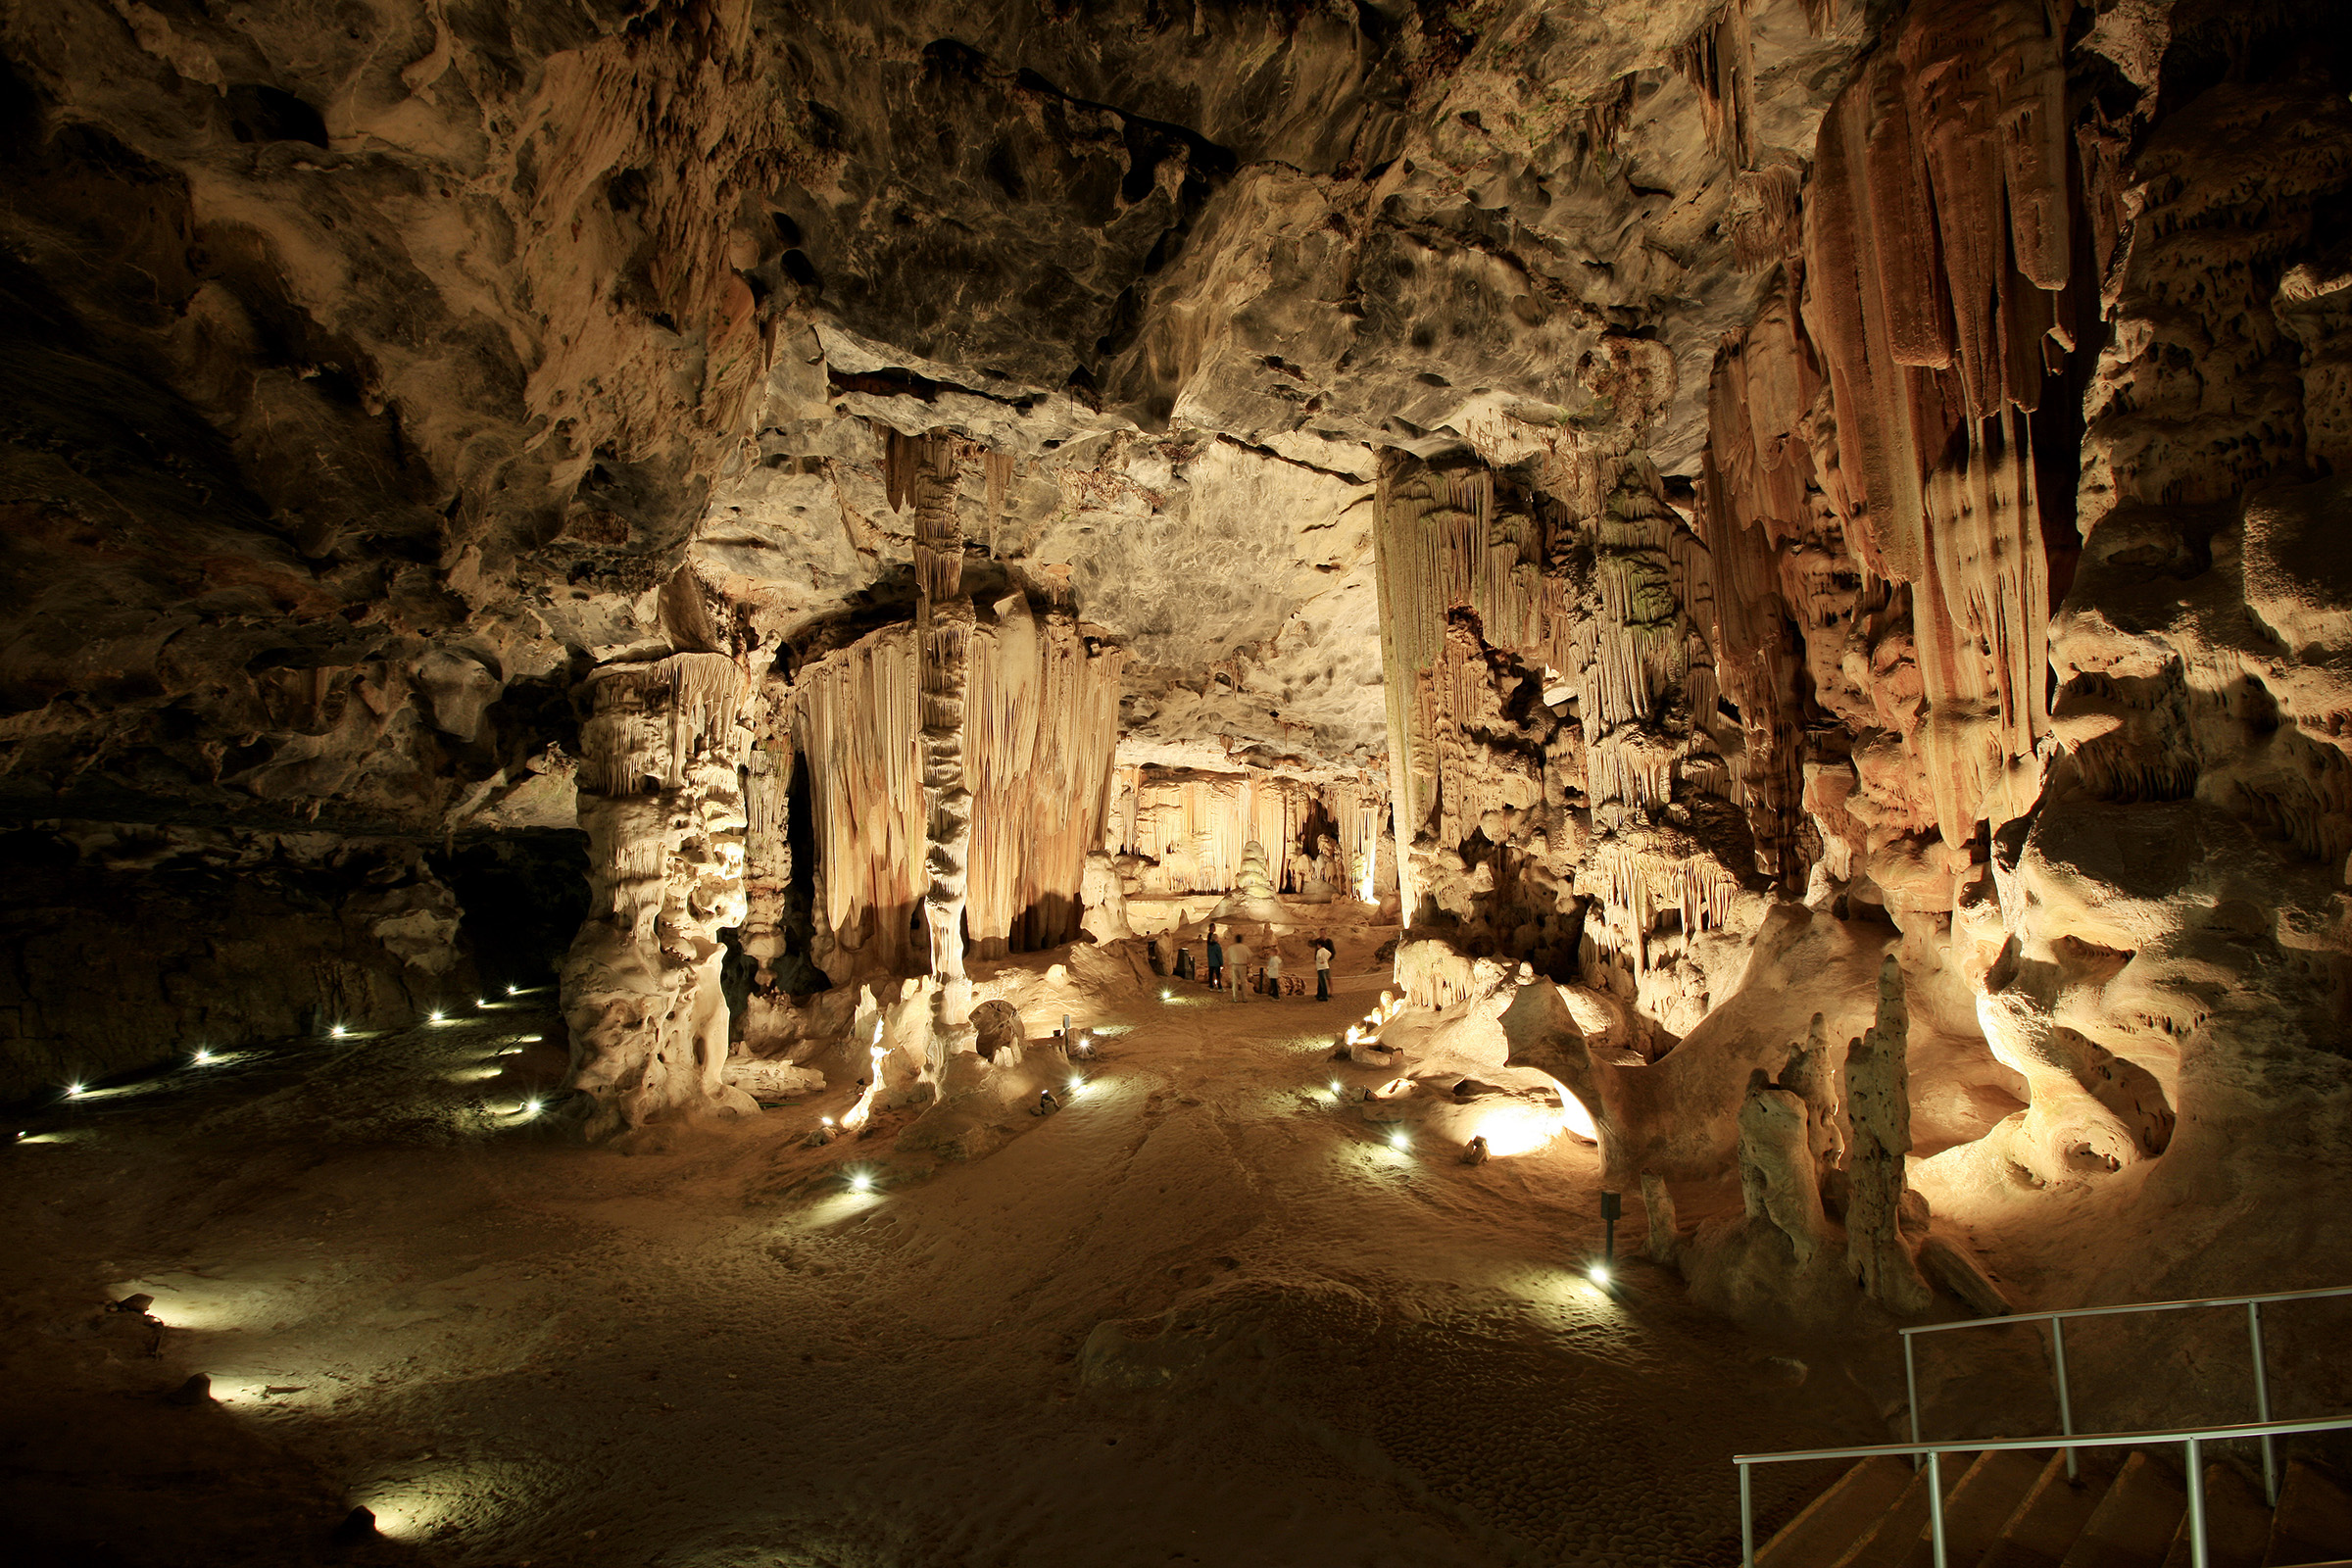 Inside the Cango Caves famous caves at the foothils of the Swartberg range near Oudtshoorn in the Western Cape